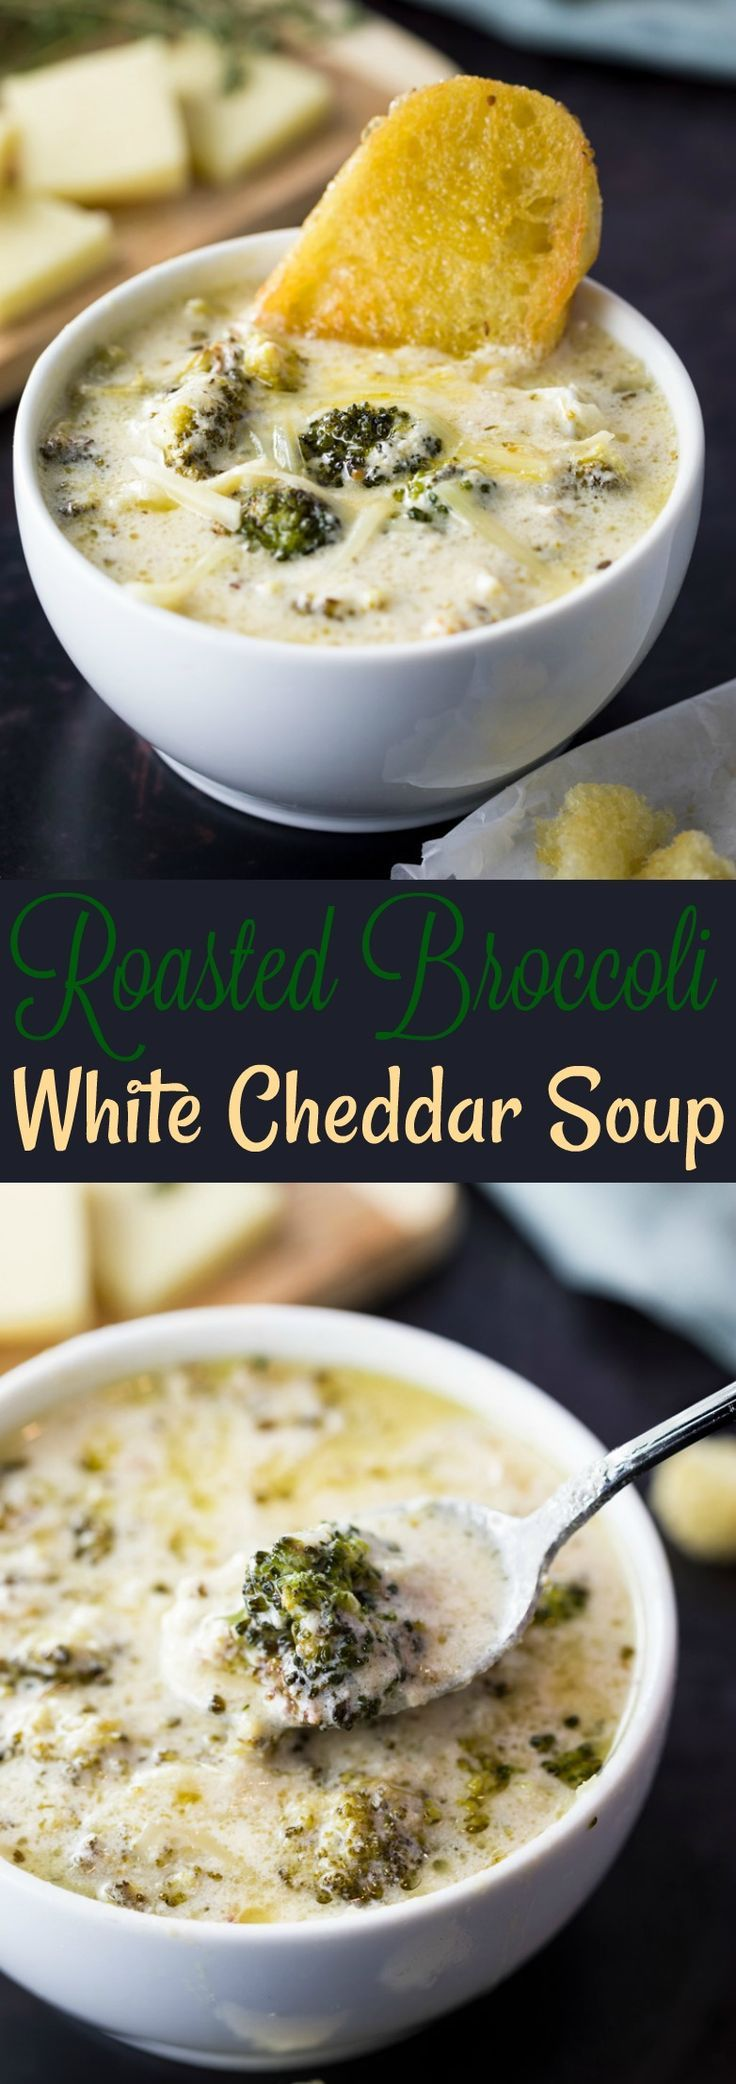 Creamy white cheddar cheese soup enriched with the flavors of perfectly roasted broccoli and melted Parmesan.